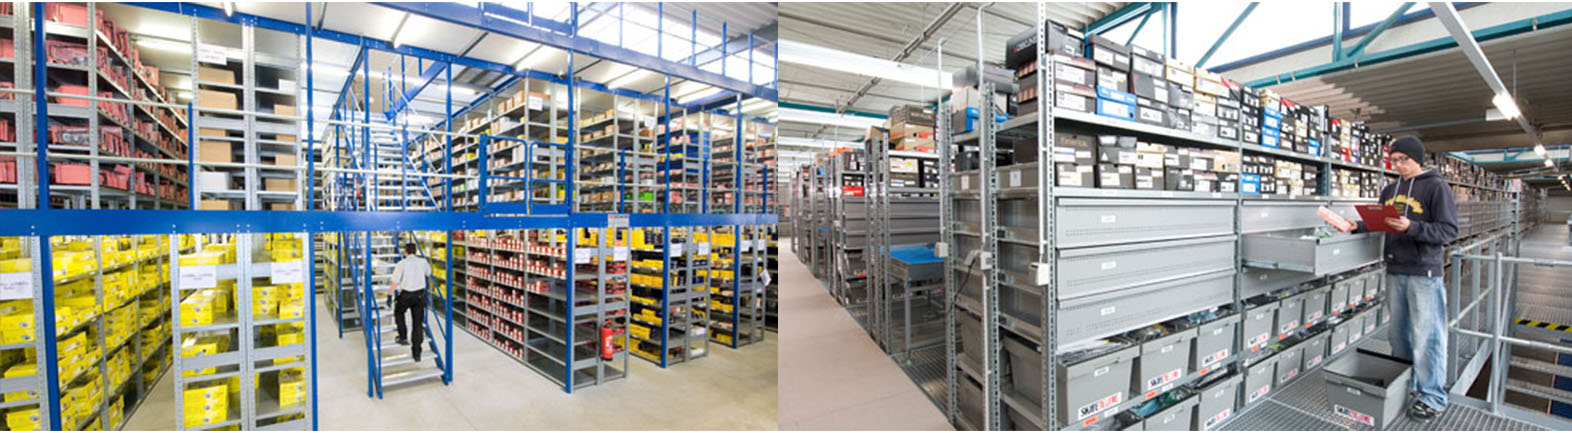 Warehouses with Multi-Level Mezzanine Systems. Quality Mobile Multi-Level Mezzanine Systems. SSI Schaefer. www.schaefershelving.com